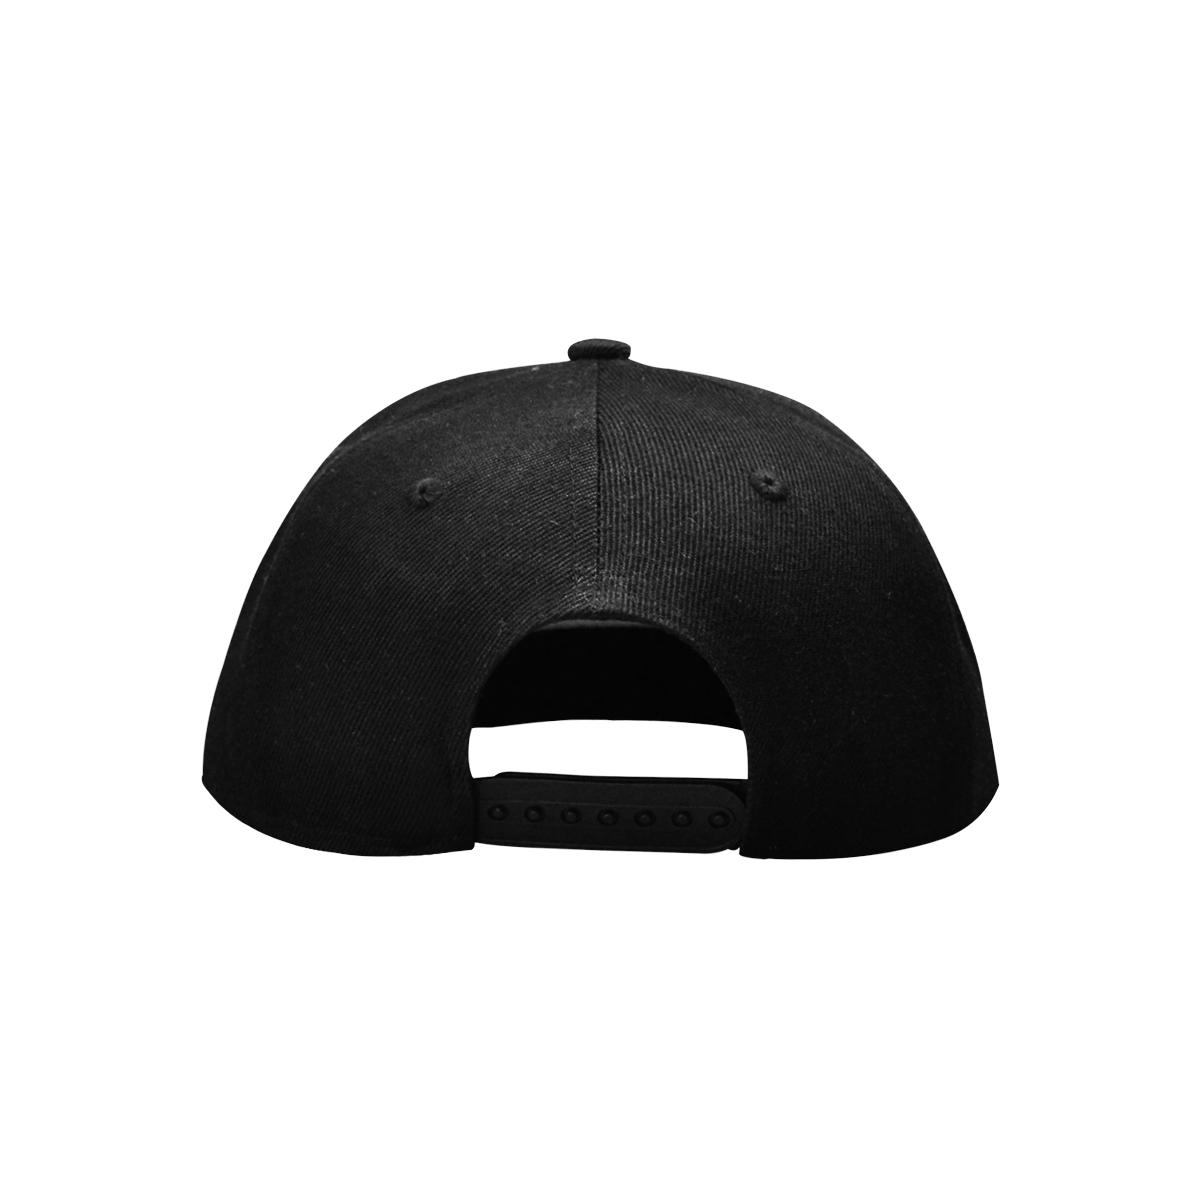 Snapback Wakerlook Hat.